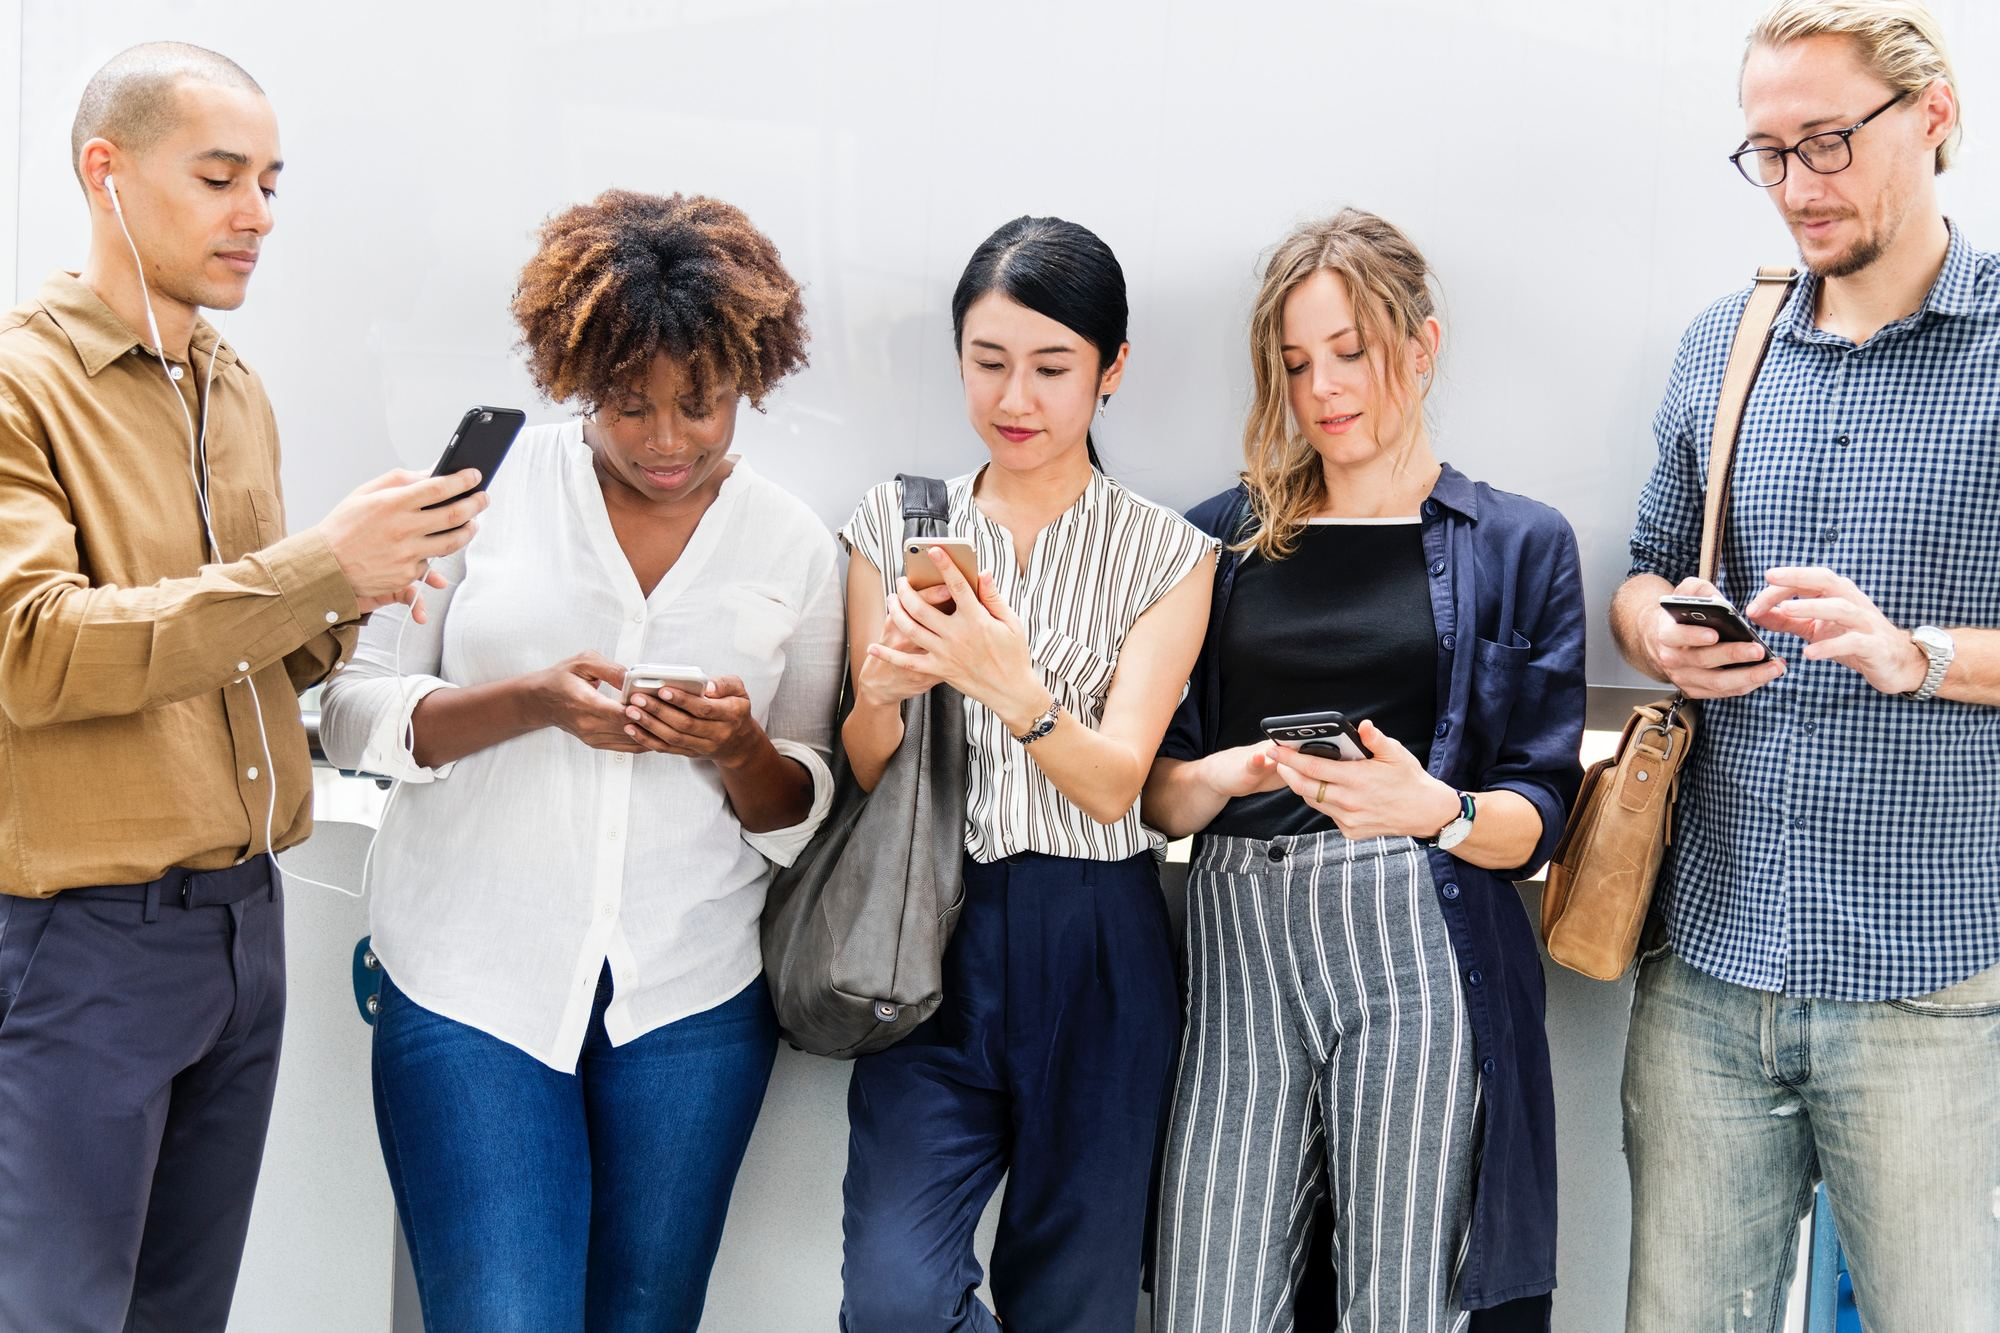 Group of people scrolling on smartphones